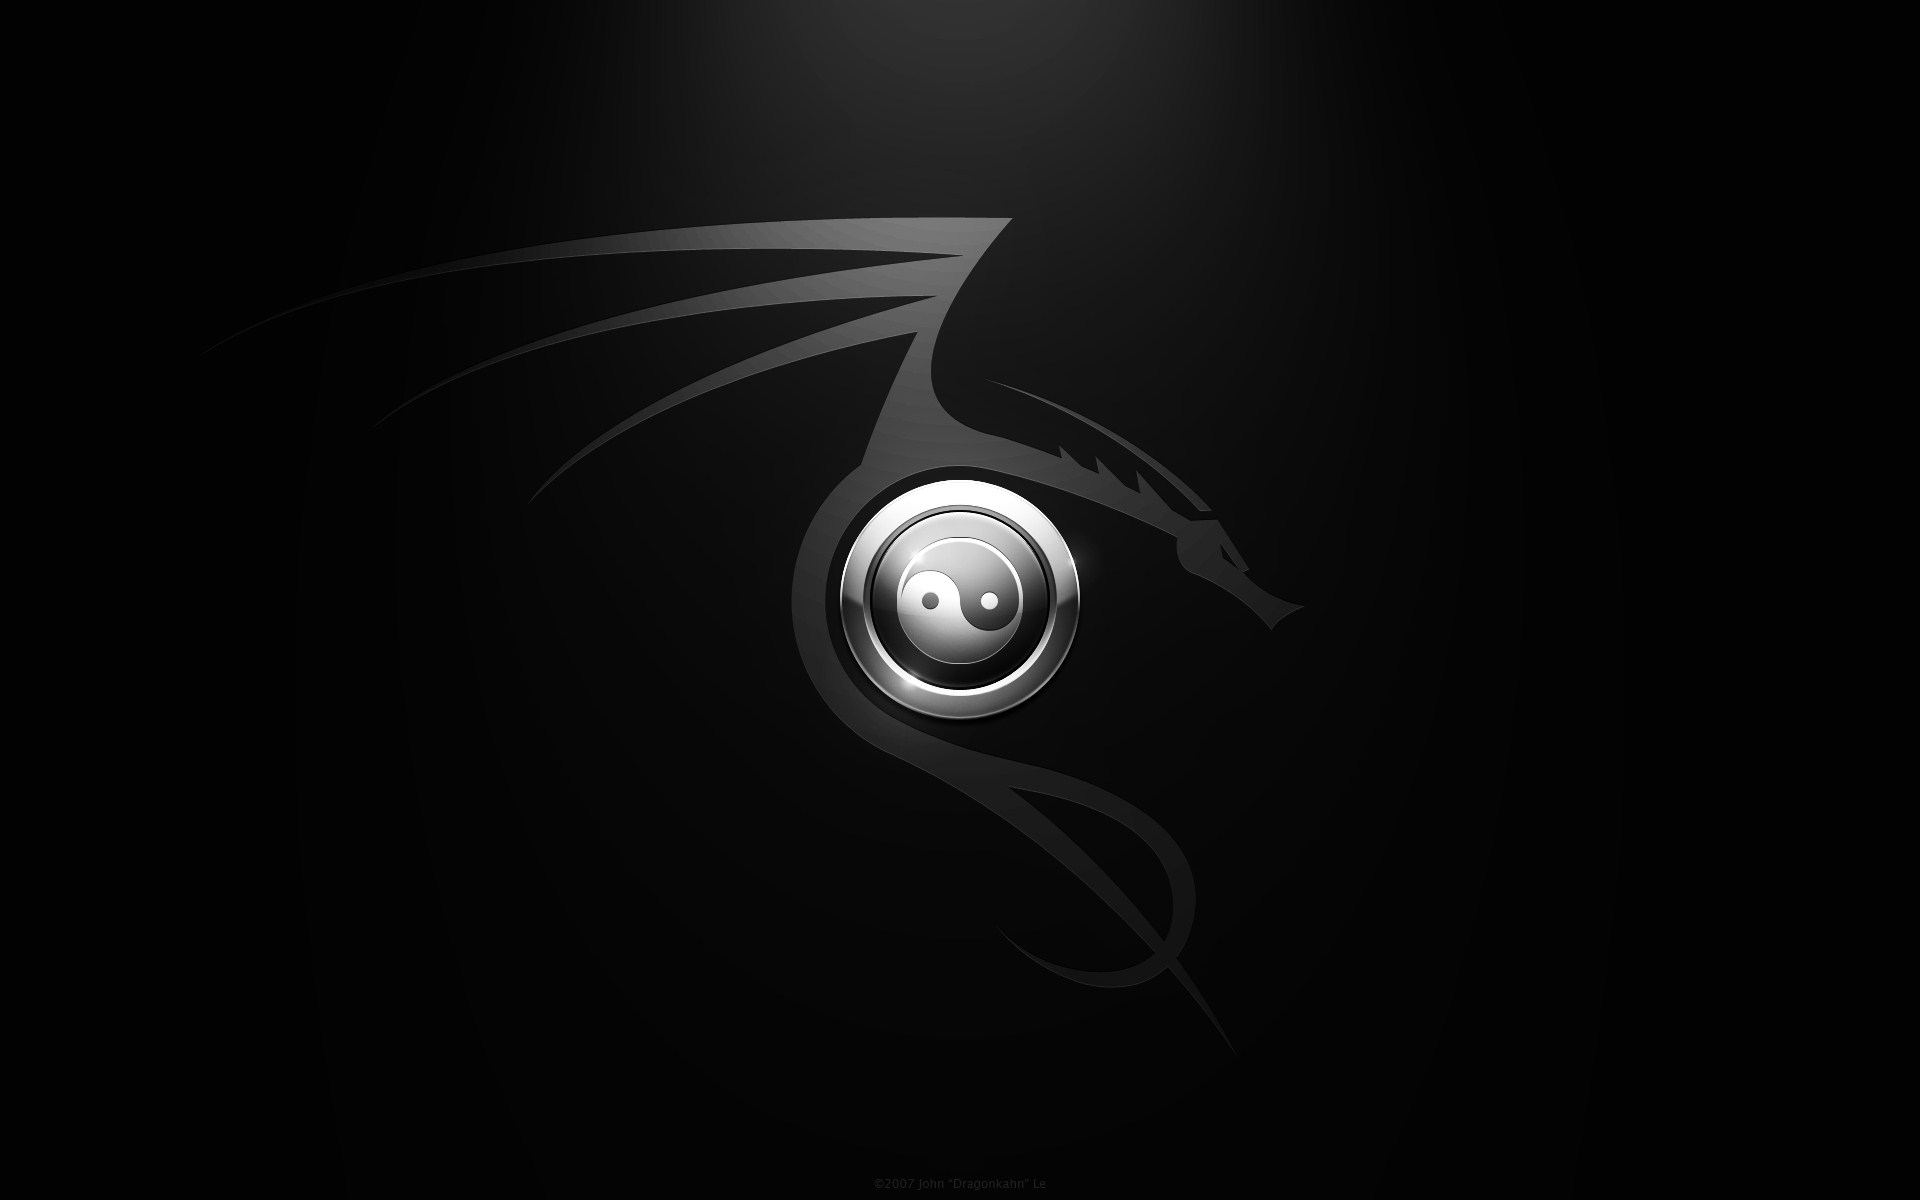 Yin Yang HD Wallpaper - WallpaperSafari